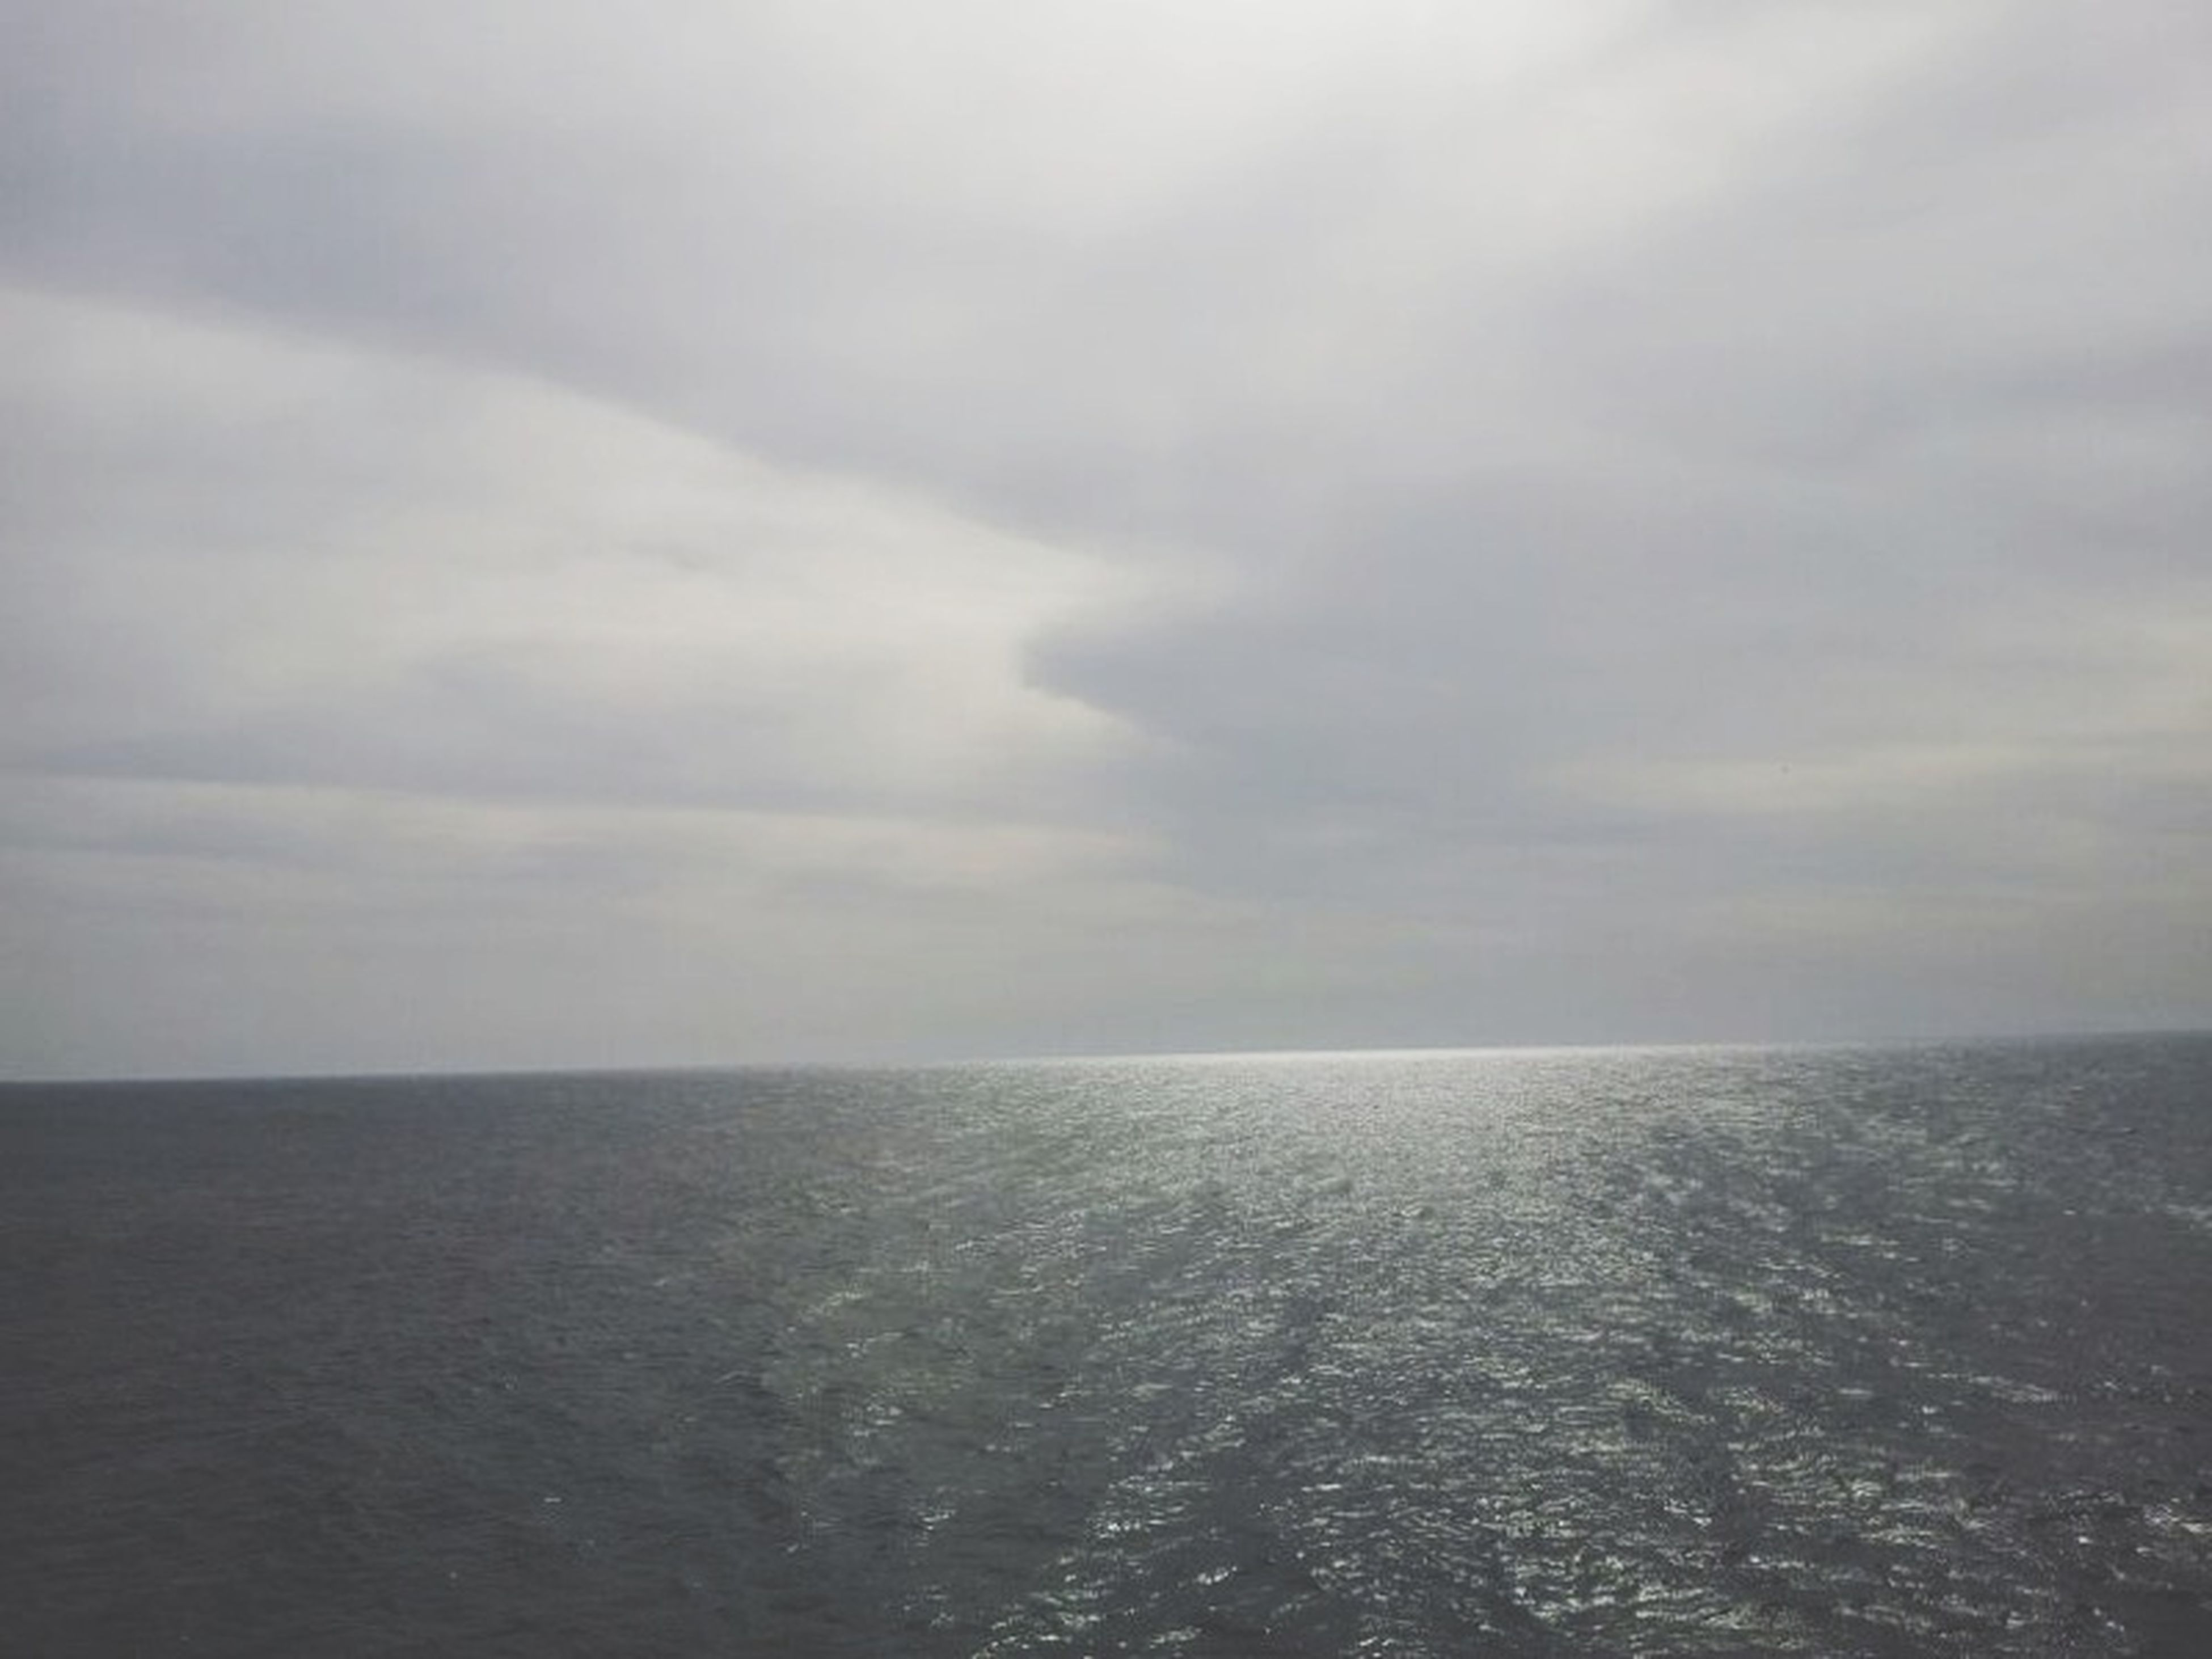 sea, water, horizon over water, sky, tranquil scene, scenics, tranquility, beauty in nature, waterfront, cloud - sky, nature, cloudy, idyllic, seascape, cloud, weather, overcast, rippled, outdoors, no people